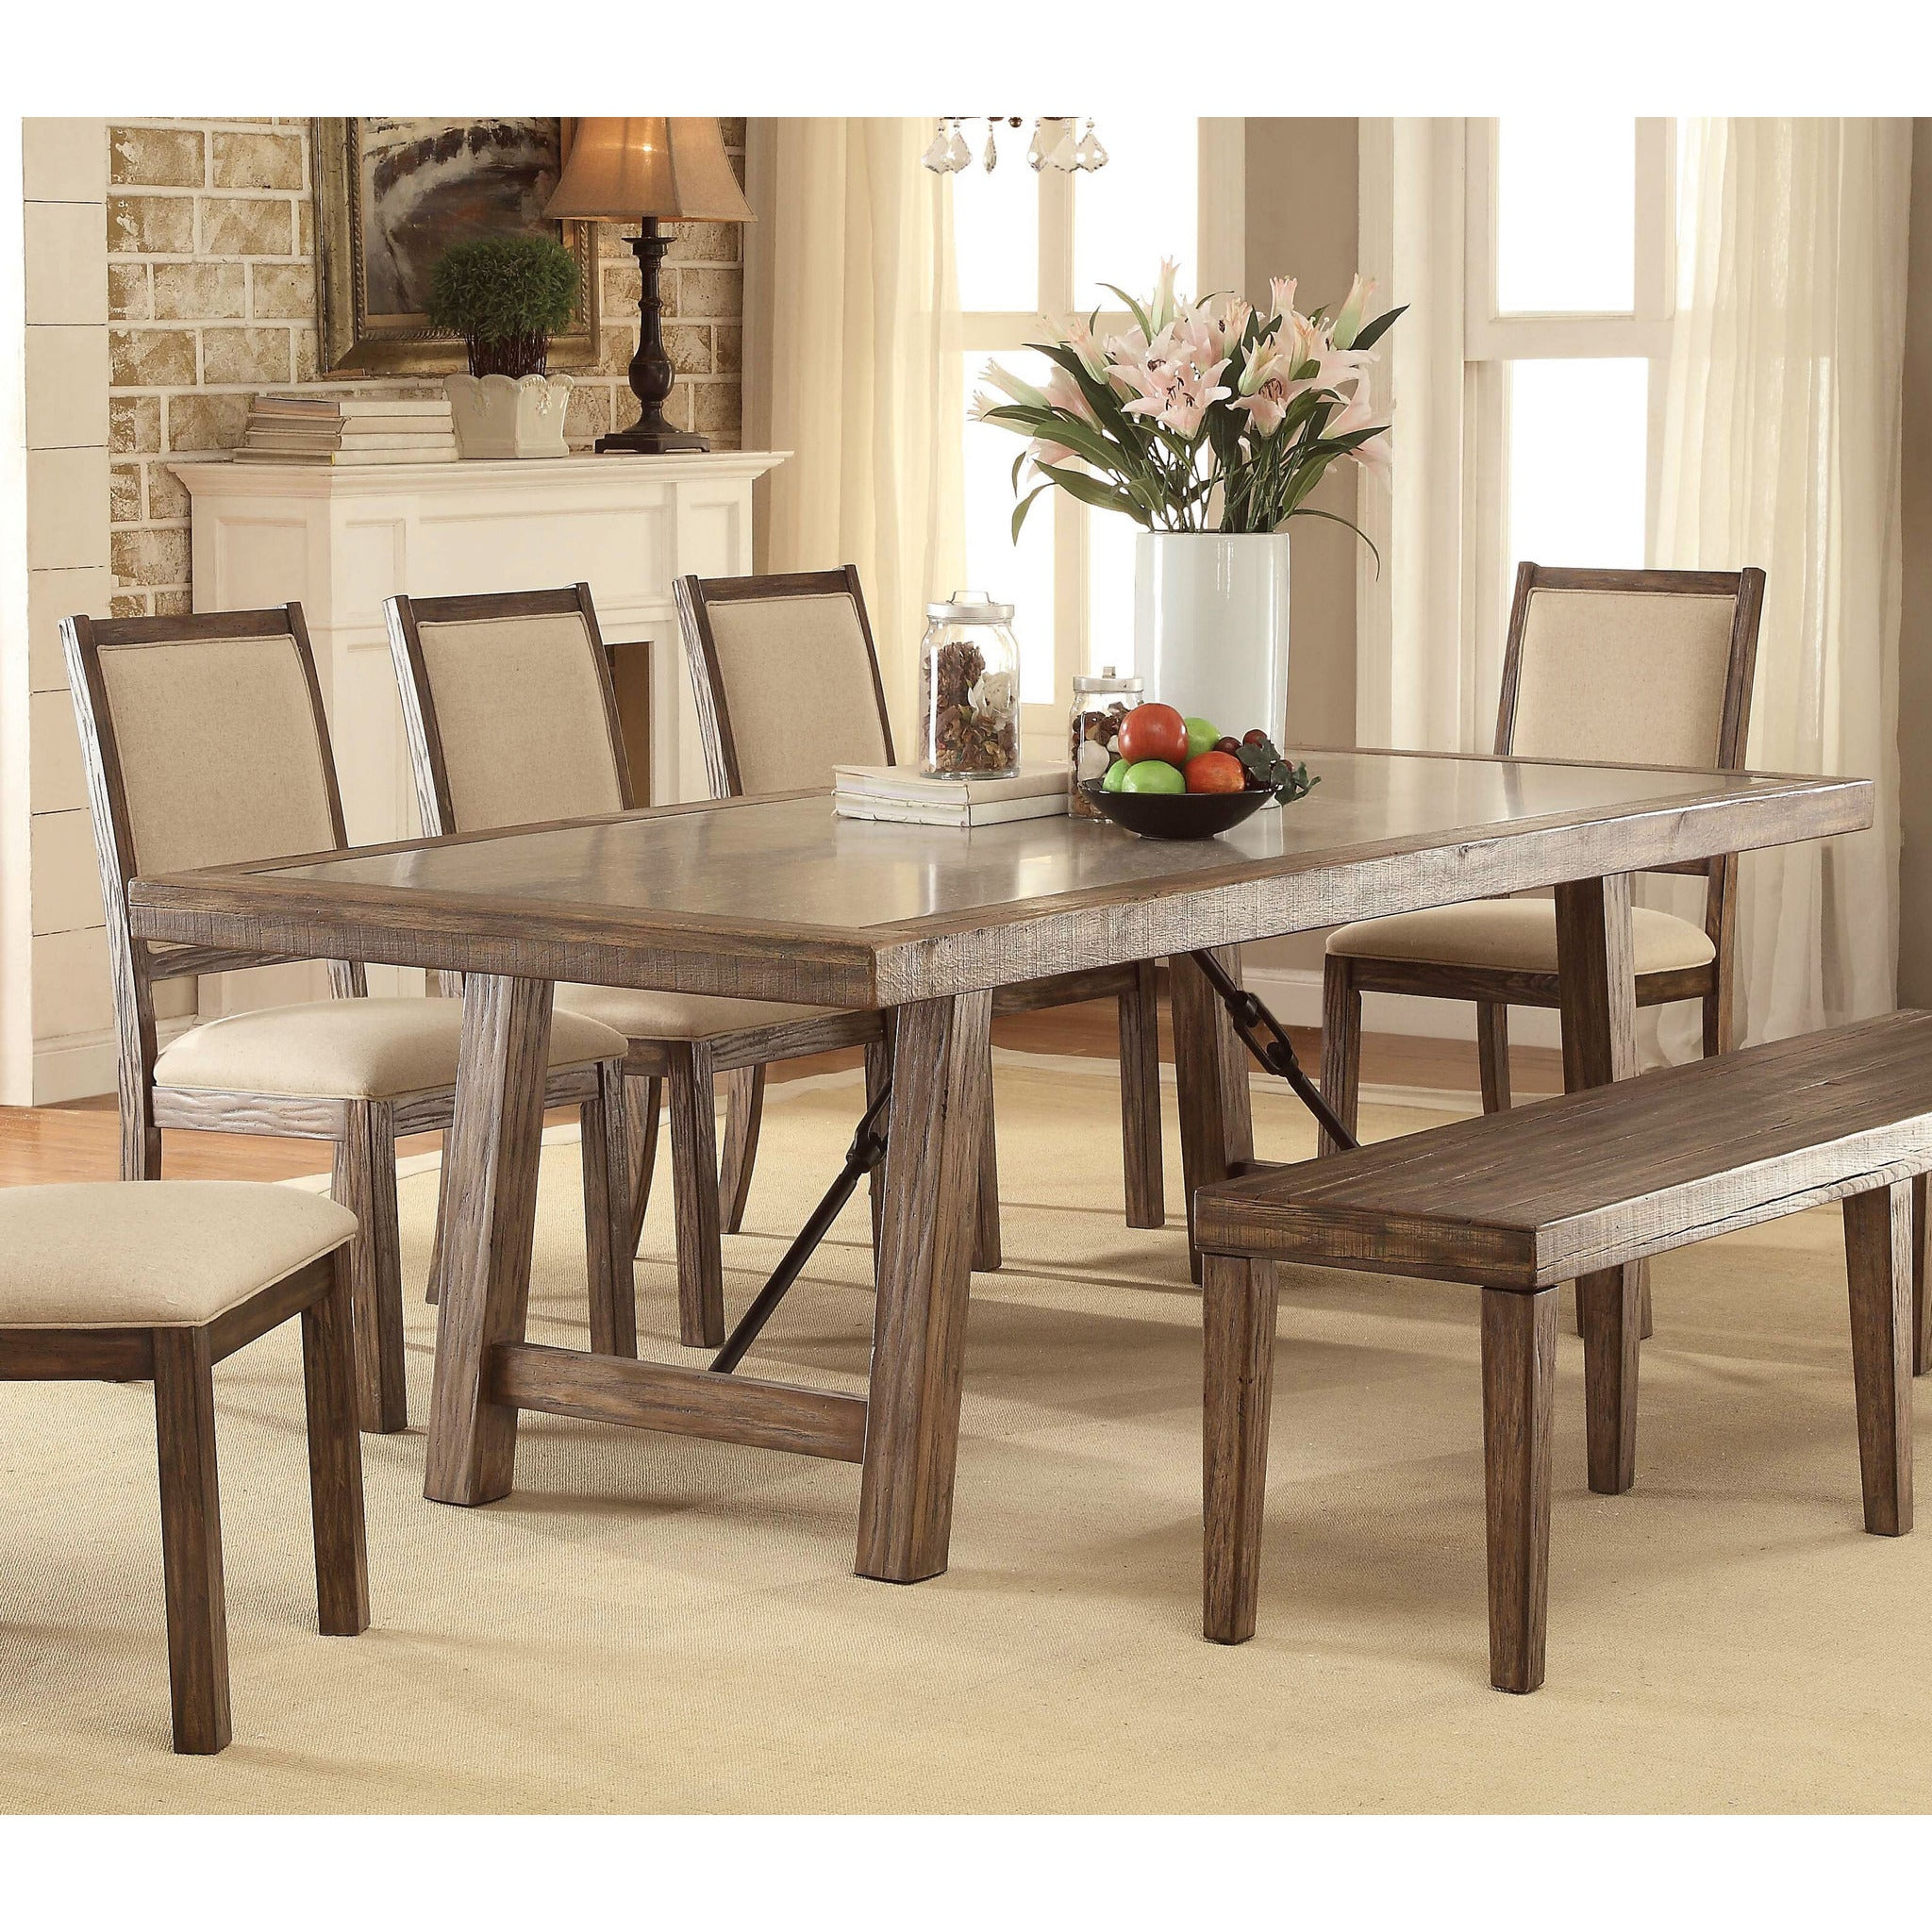 ... Sozier Contemporary Two Tone Dining Table In Rustic Oak , EMFURN   2 ...